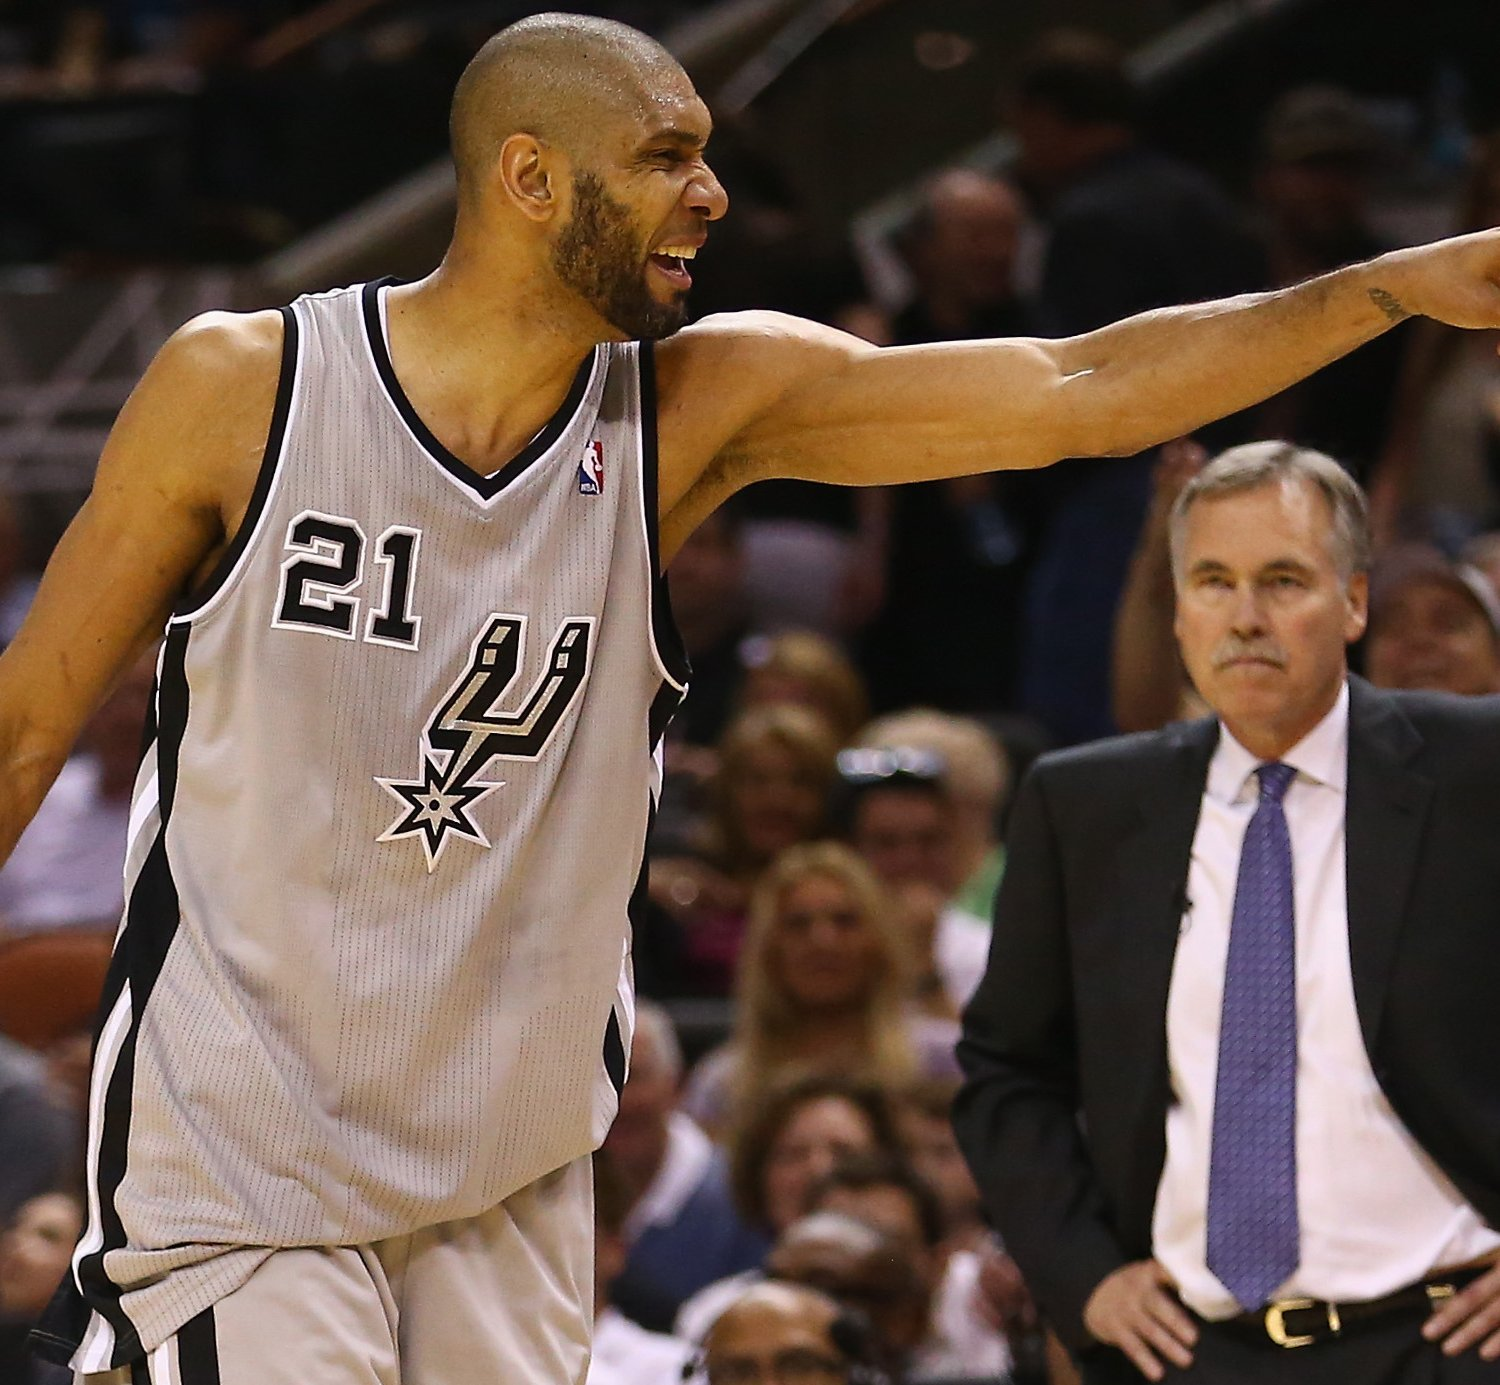 LA Lakers Vs. San Antonio Spurs: Game 2 Preview, Schedule